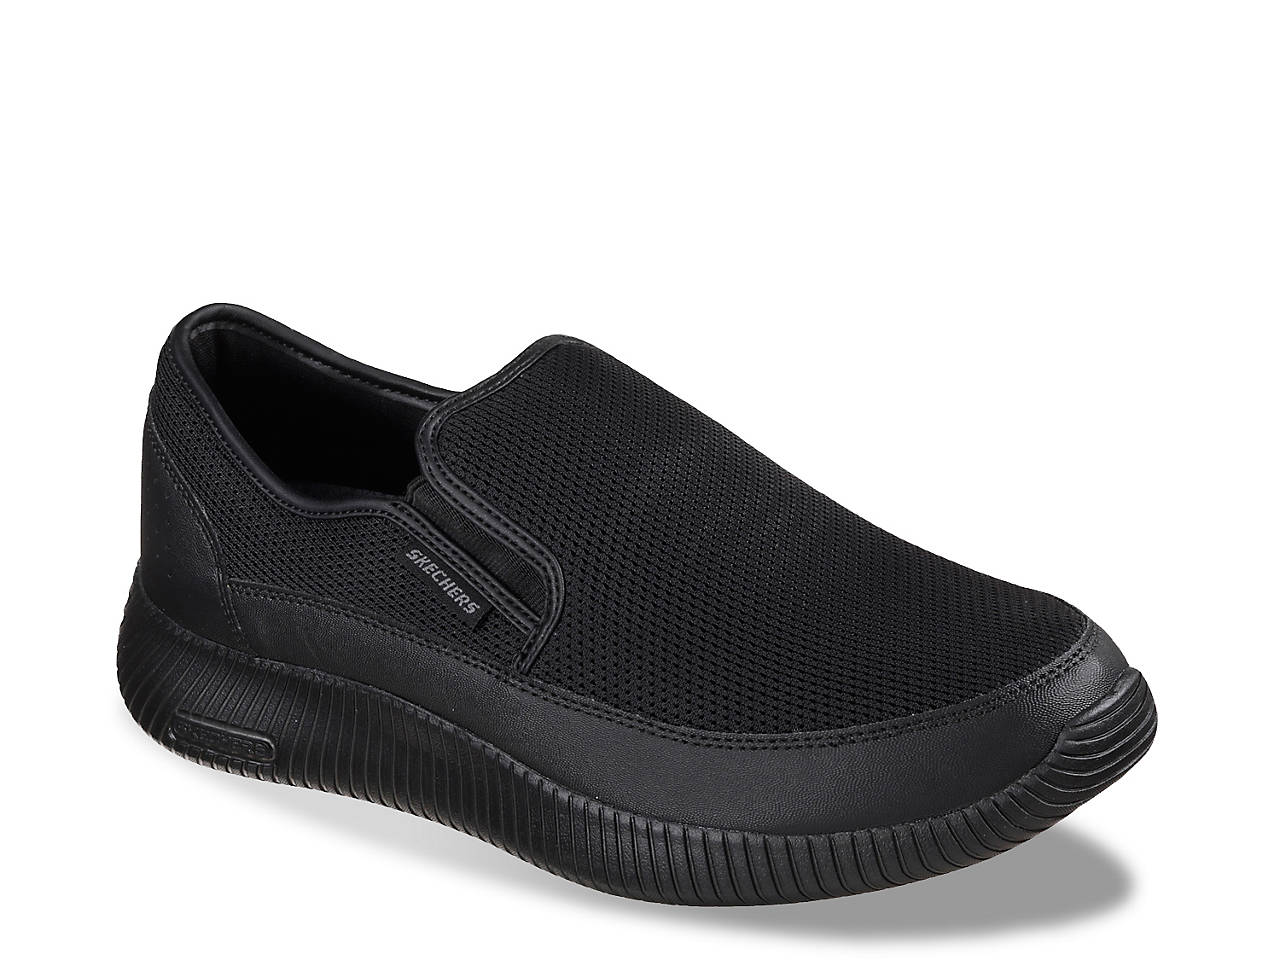 76ec33f5421da Skechers Depth Charge Flish Slip-On - Men's Men's Shoes | DSW